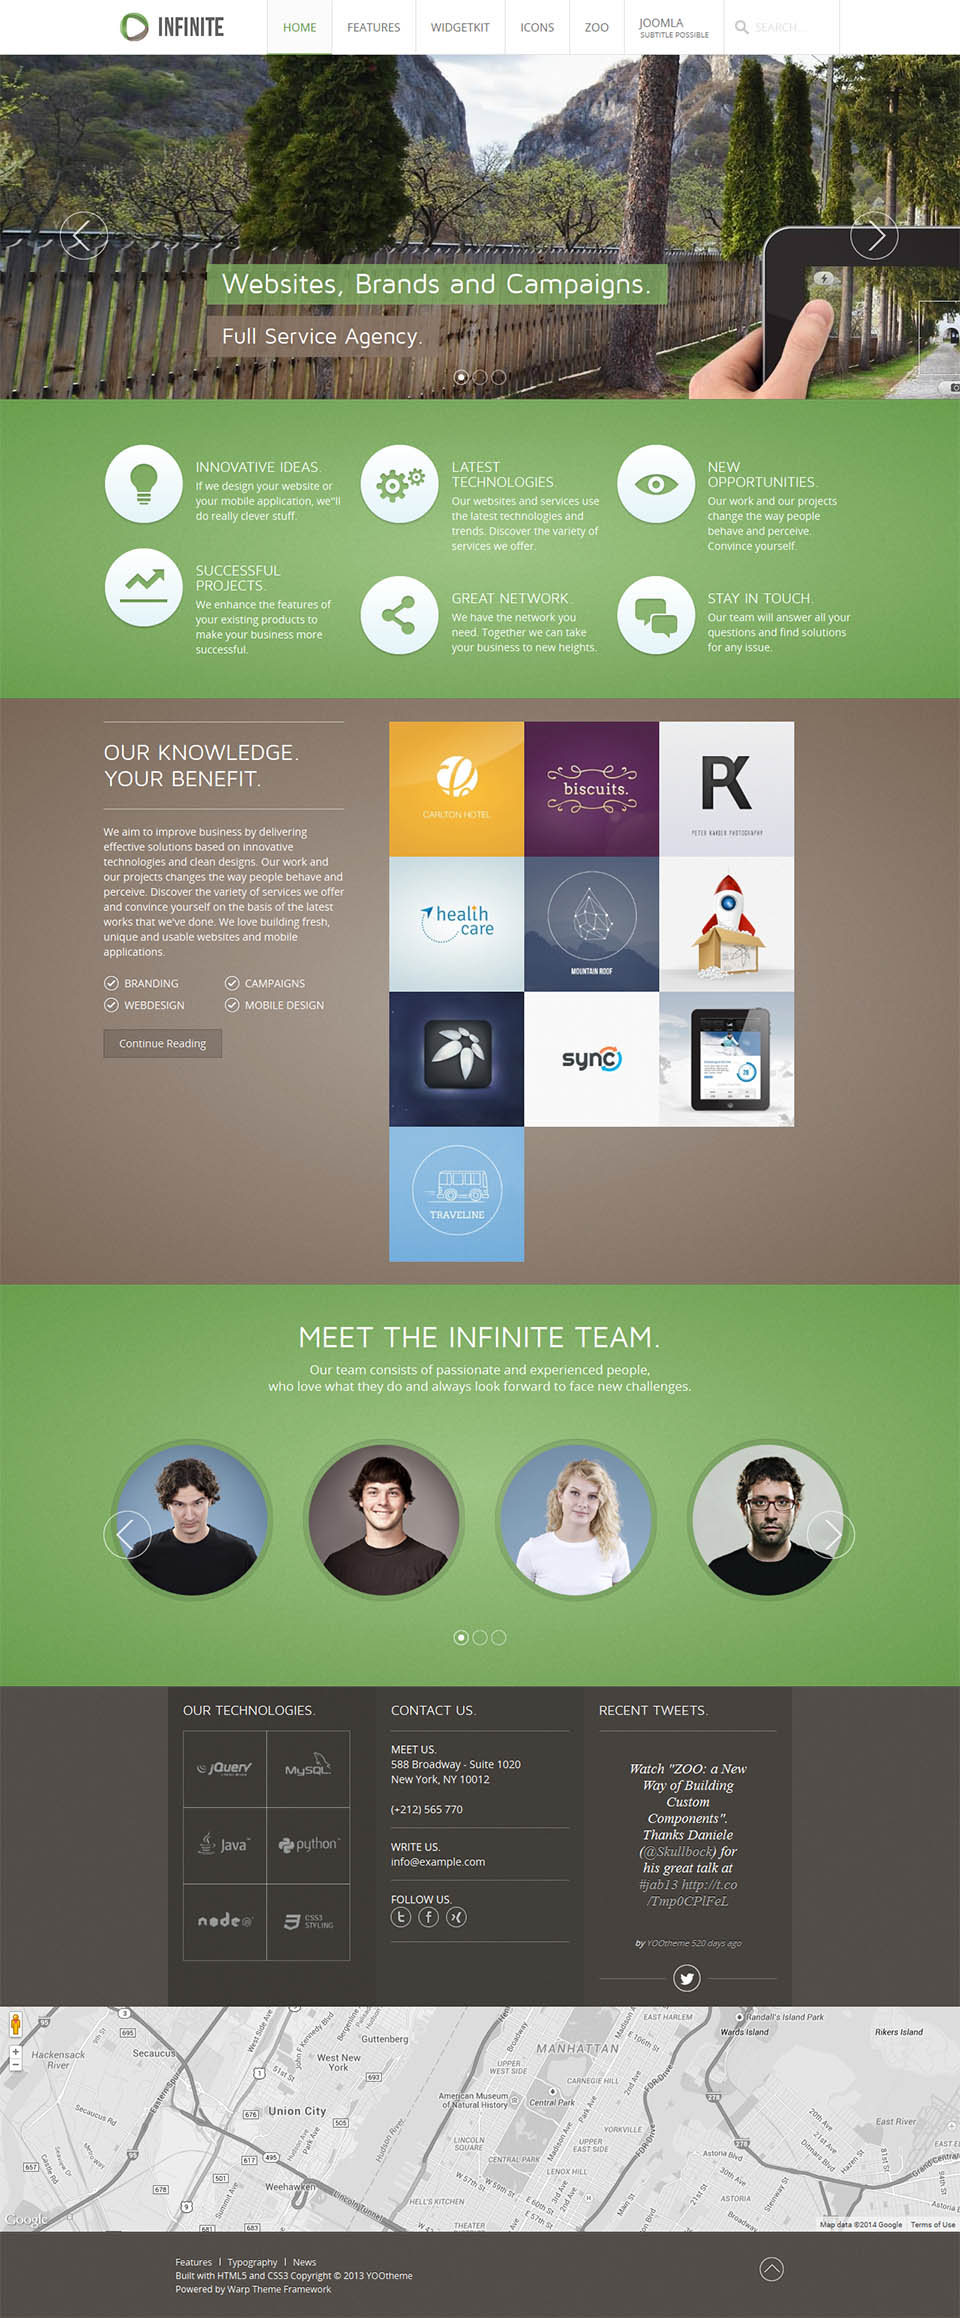 YOOtheme Infinite v1 0 1 - the portfolio template for Joomla